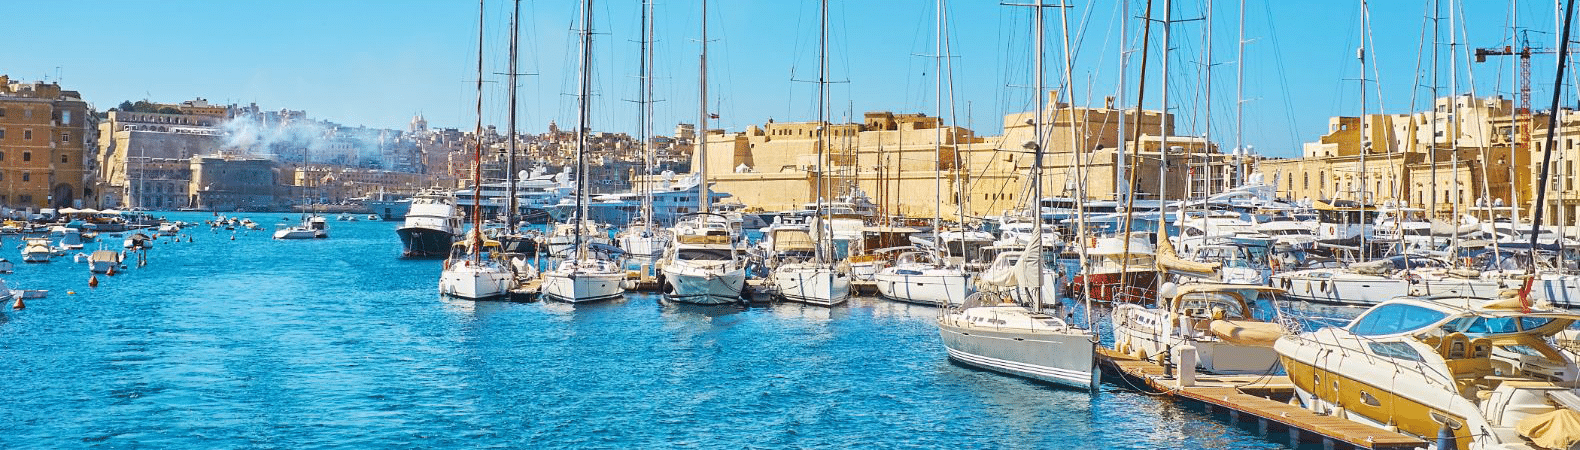 grand harbour marina malta boatcare trading limited